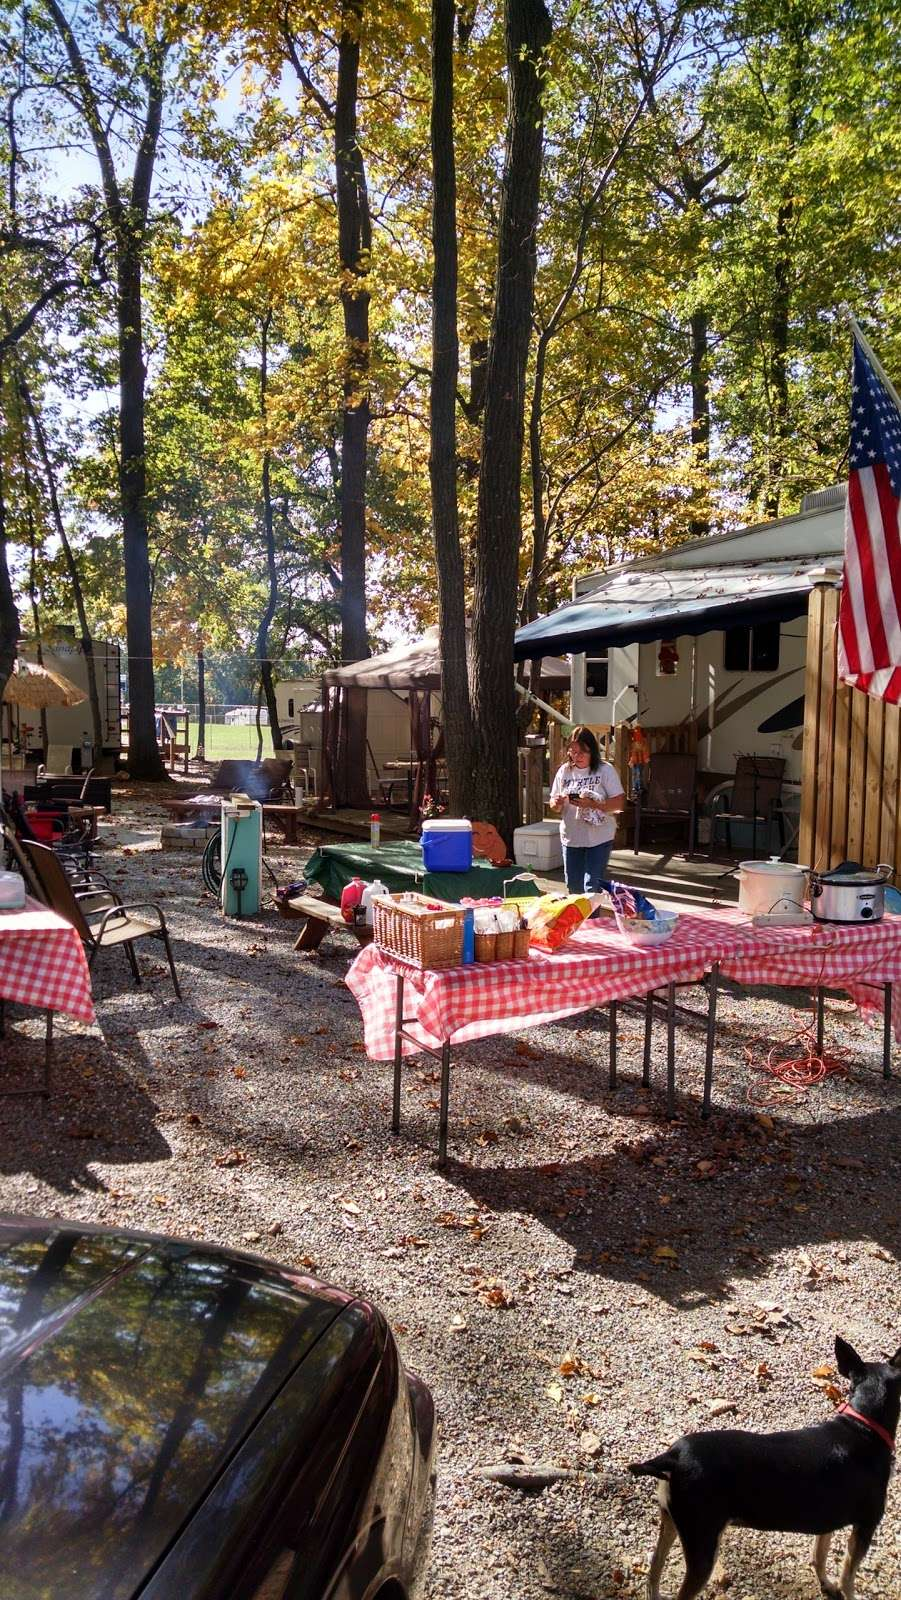 HOBO HOLLOW CAMPGROUND - campground  | Photo 10 of 10 | Address: 65 Nissley Ln, Holtwood, PA 17532, USA | Phone: (717) 284-2644